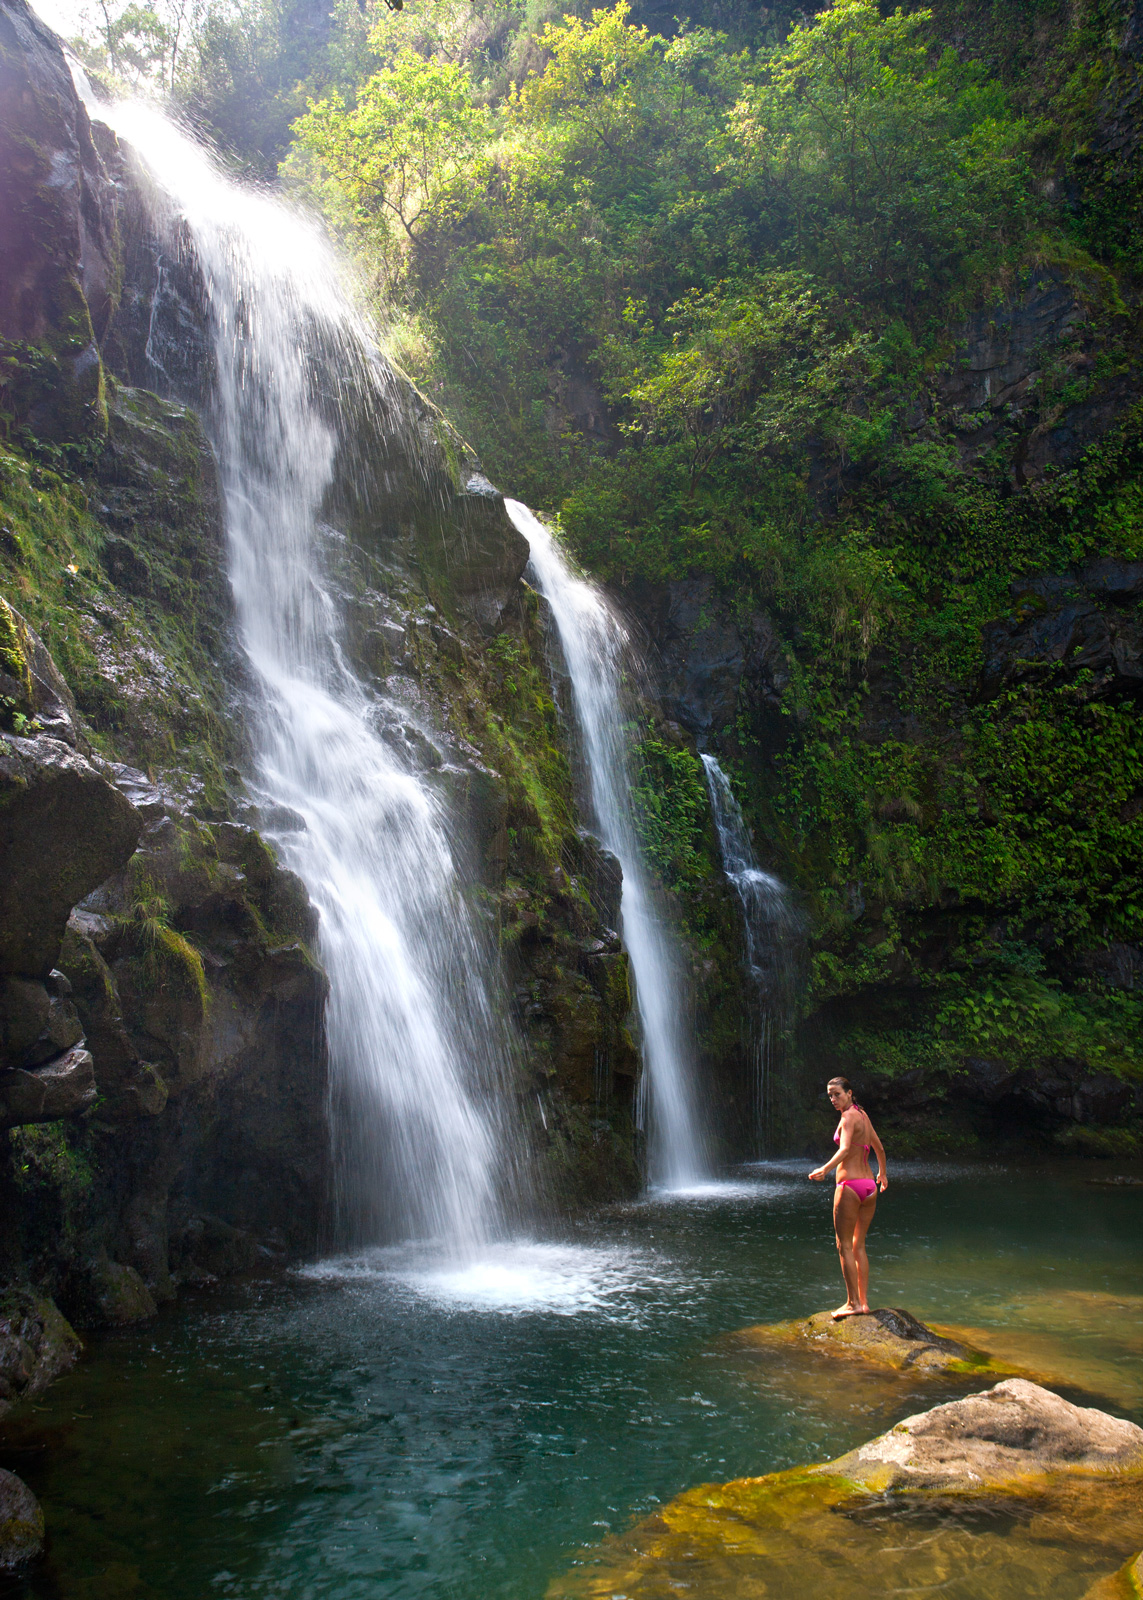 Waterfalls along famous road to Hana in Maui, Hawaii.